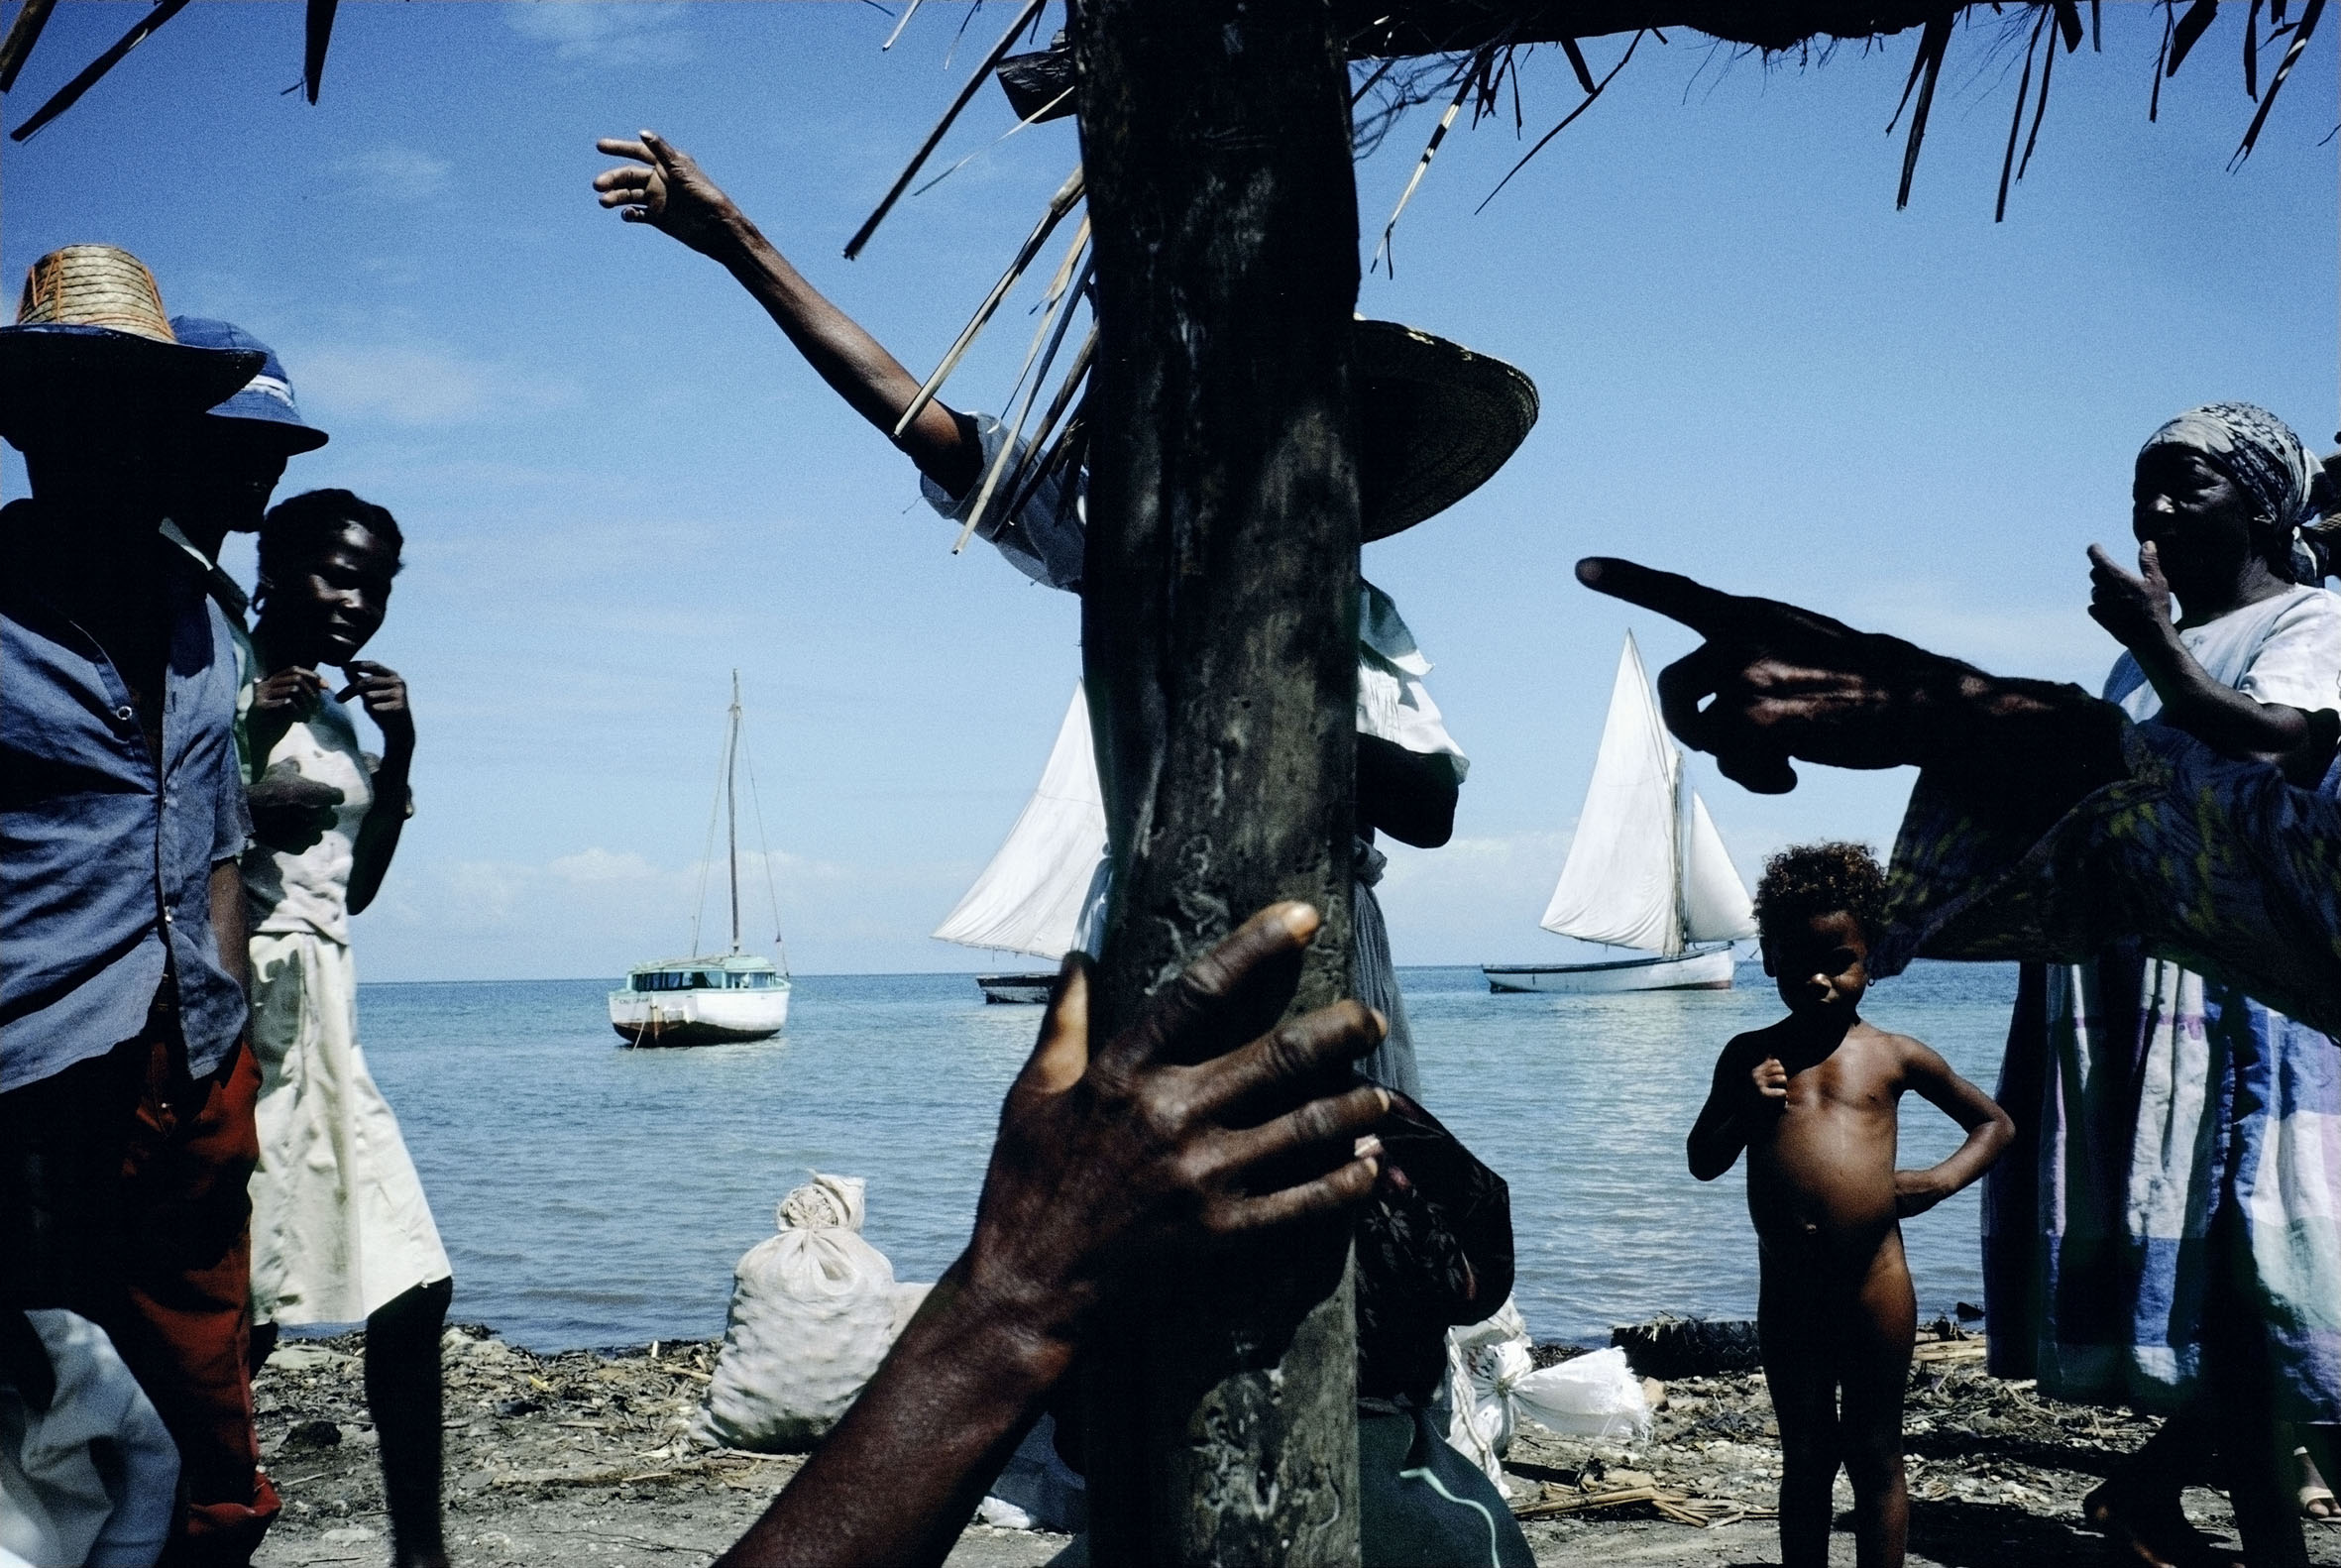 Alex Webb - Haiti - 1986 - ©Alex Webb/Magnum - Photos/Contrasto